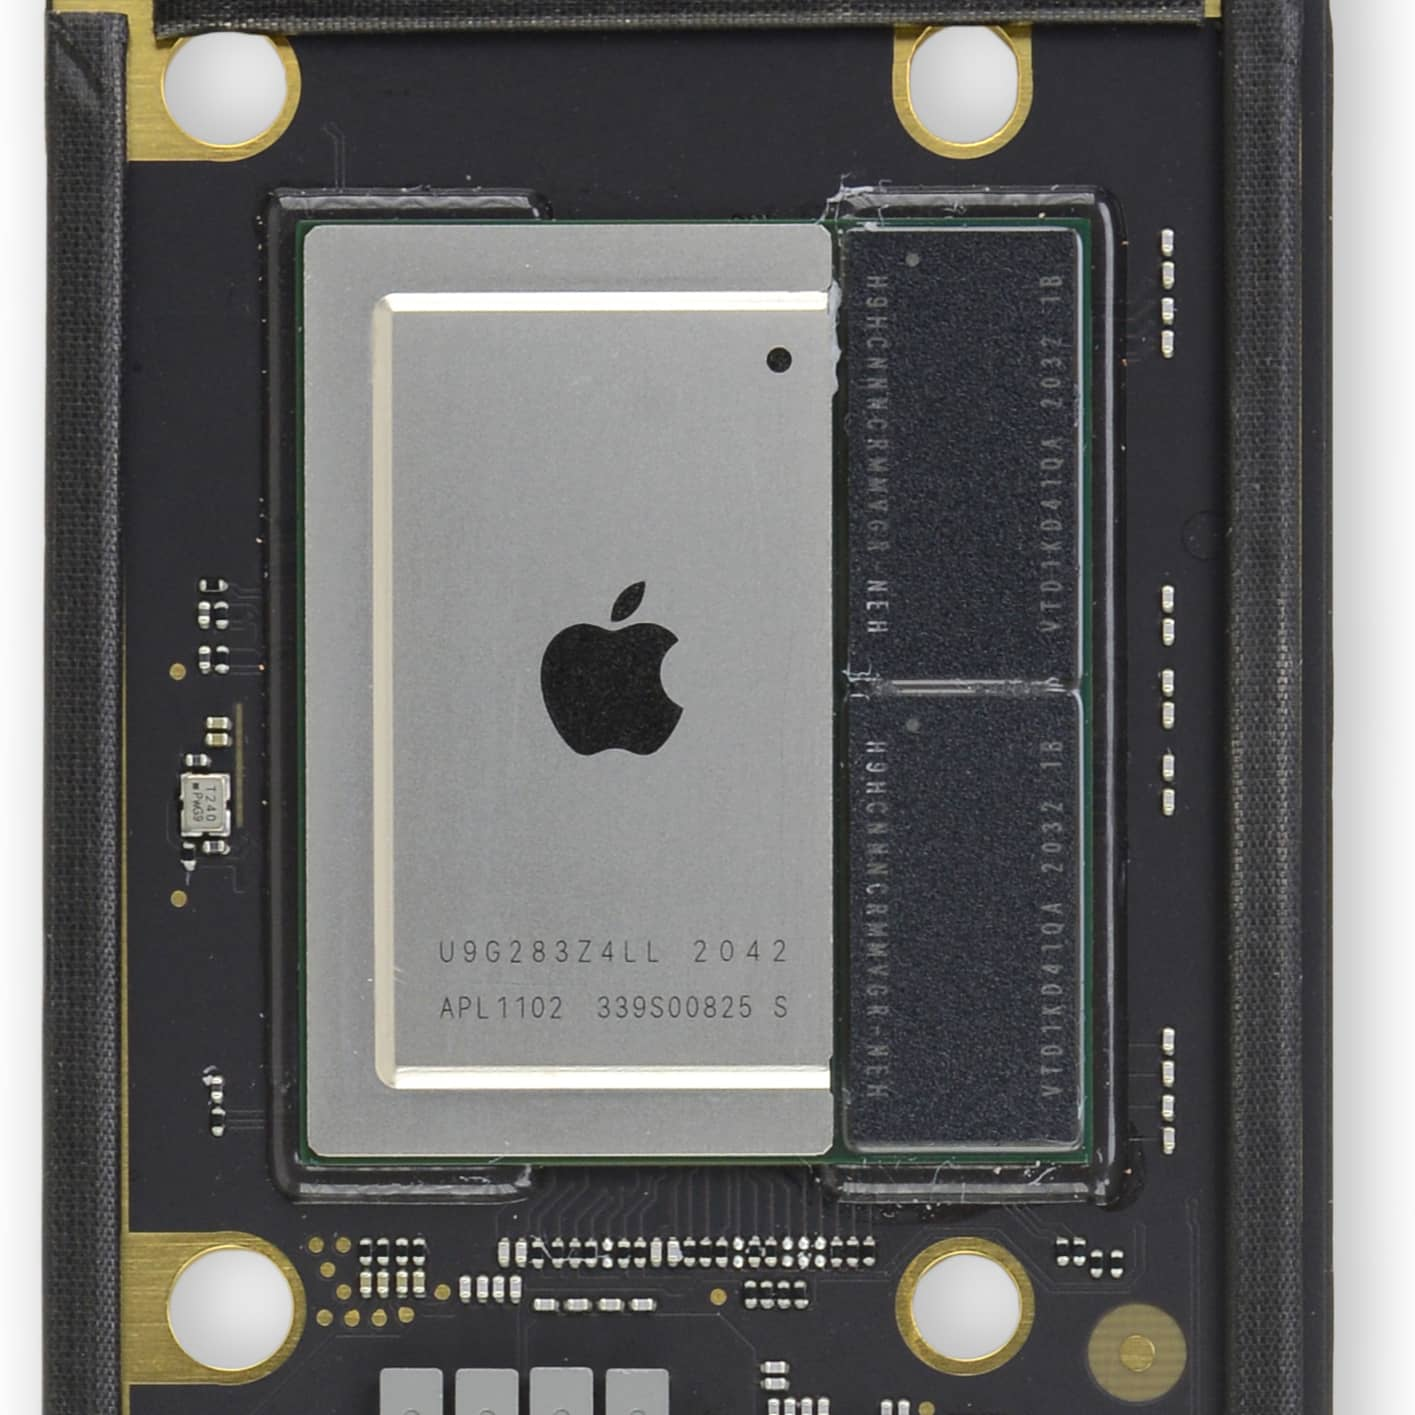 Procesor Apple M1 iFixit